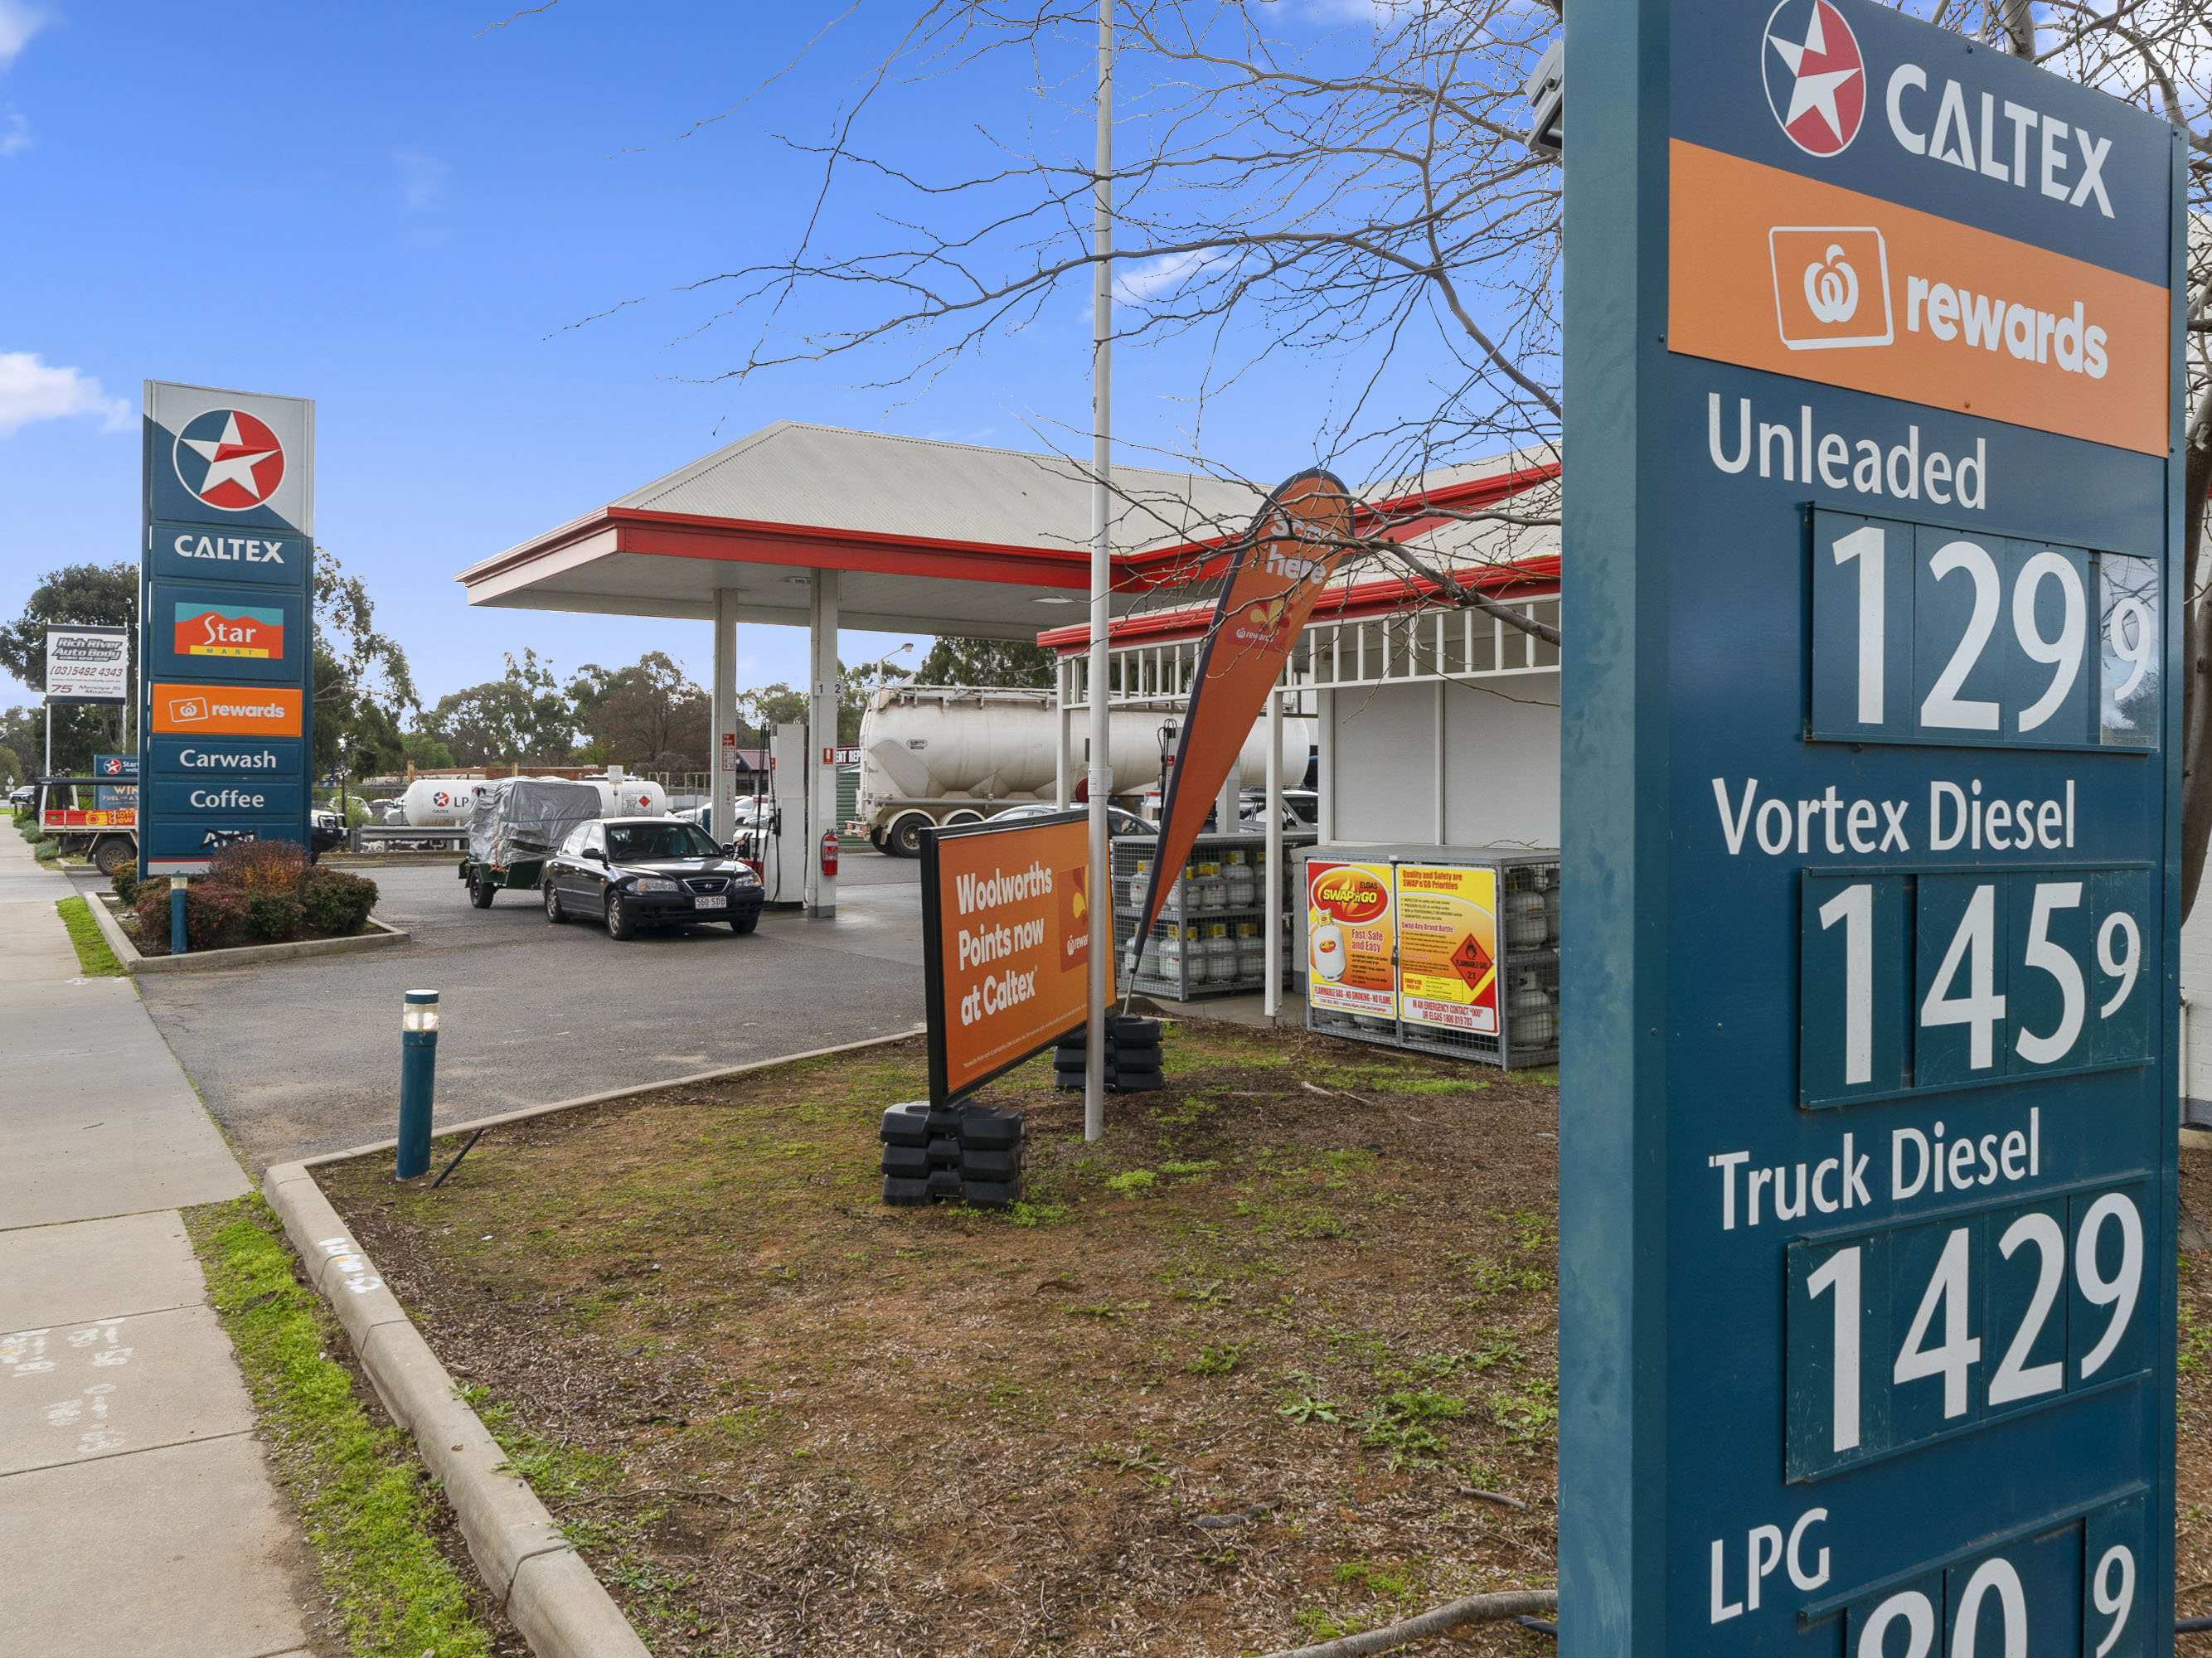 Secure Net Lease Direct To Caltex – Town Entry Position